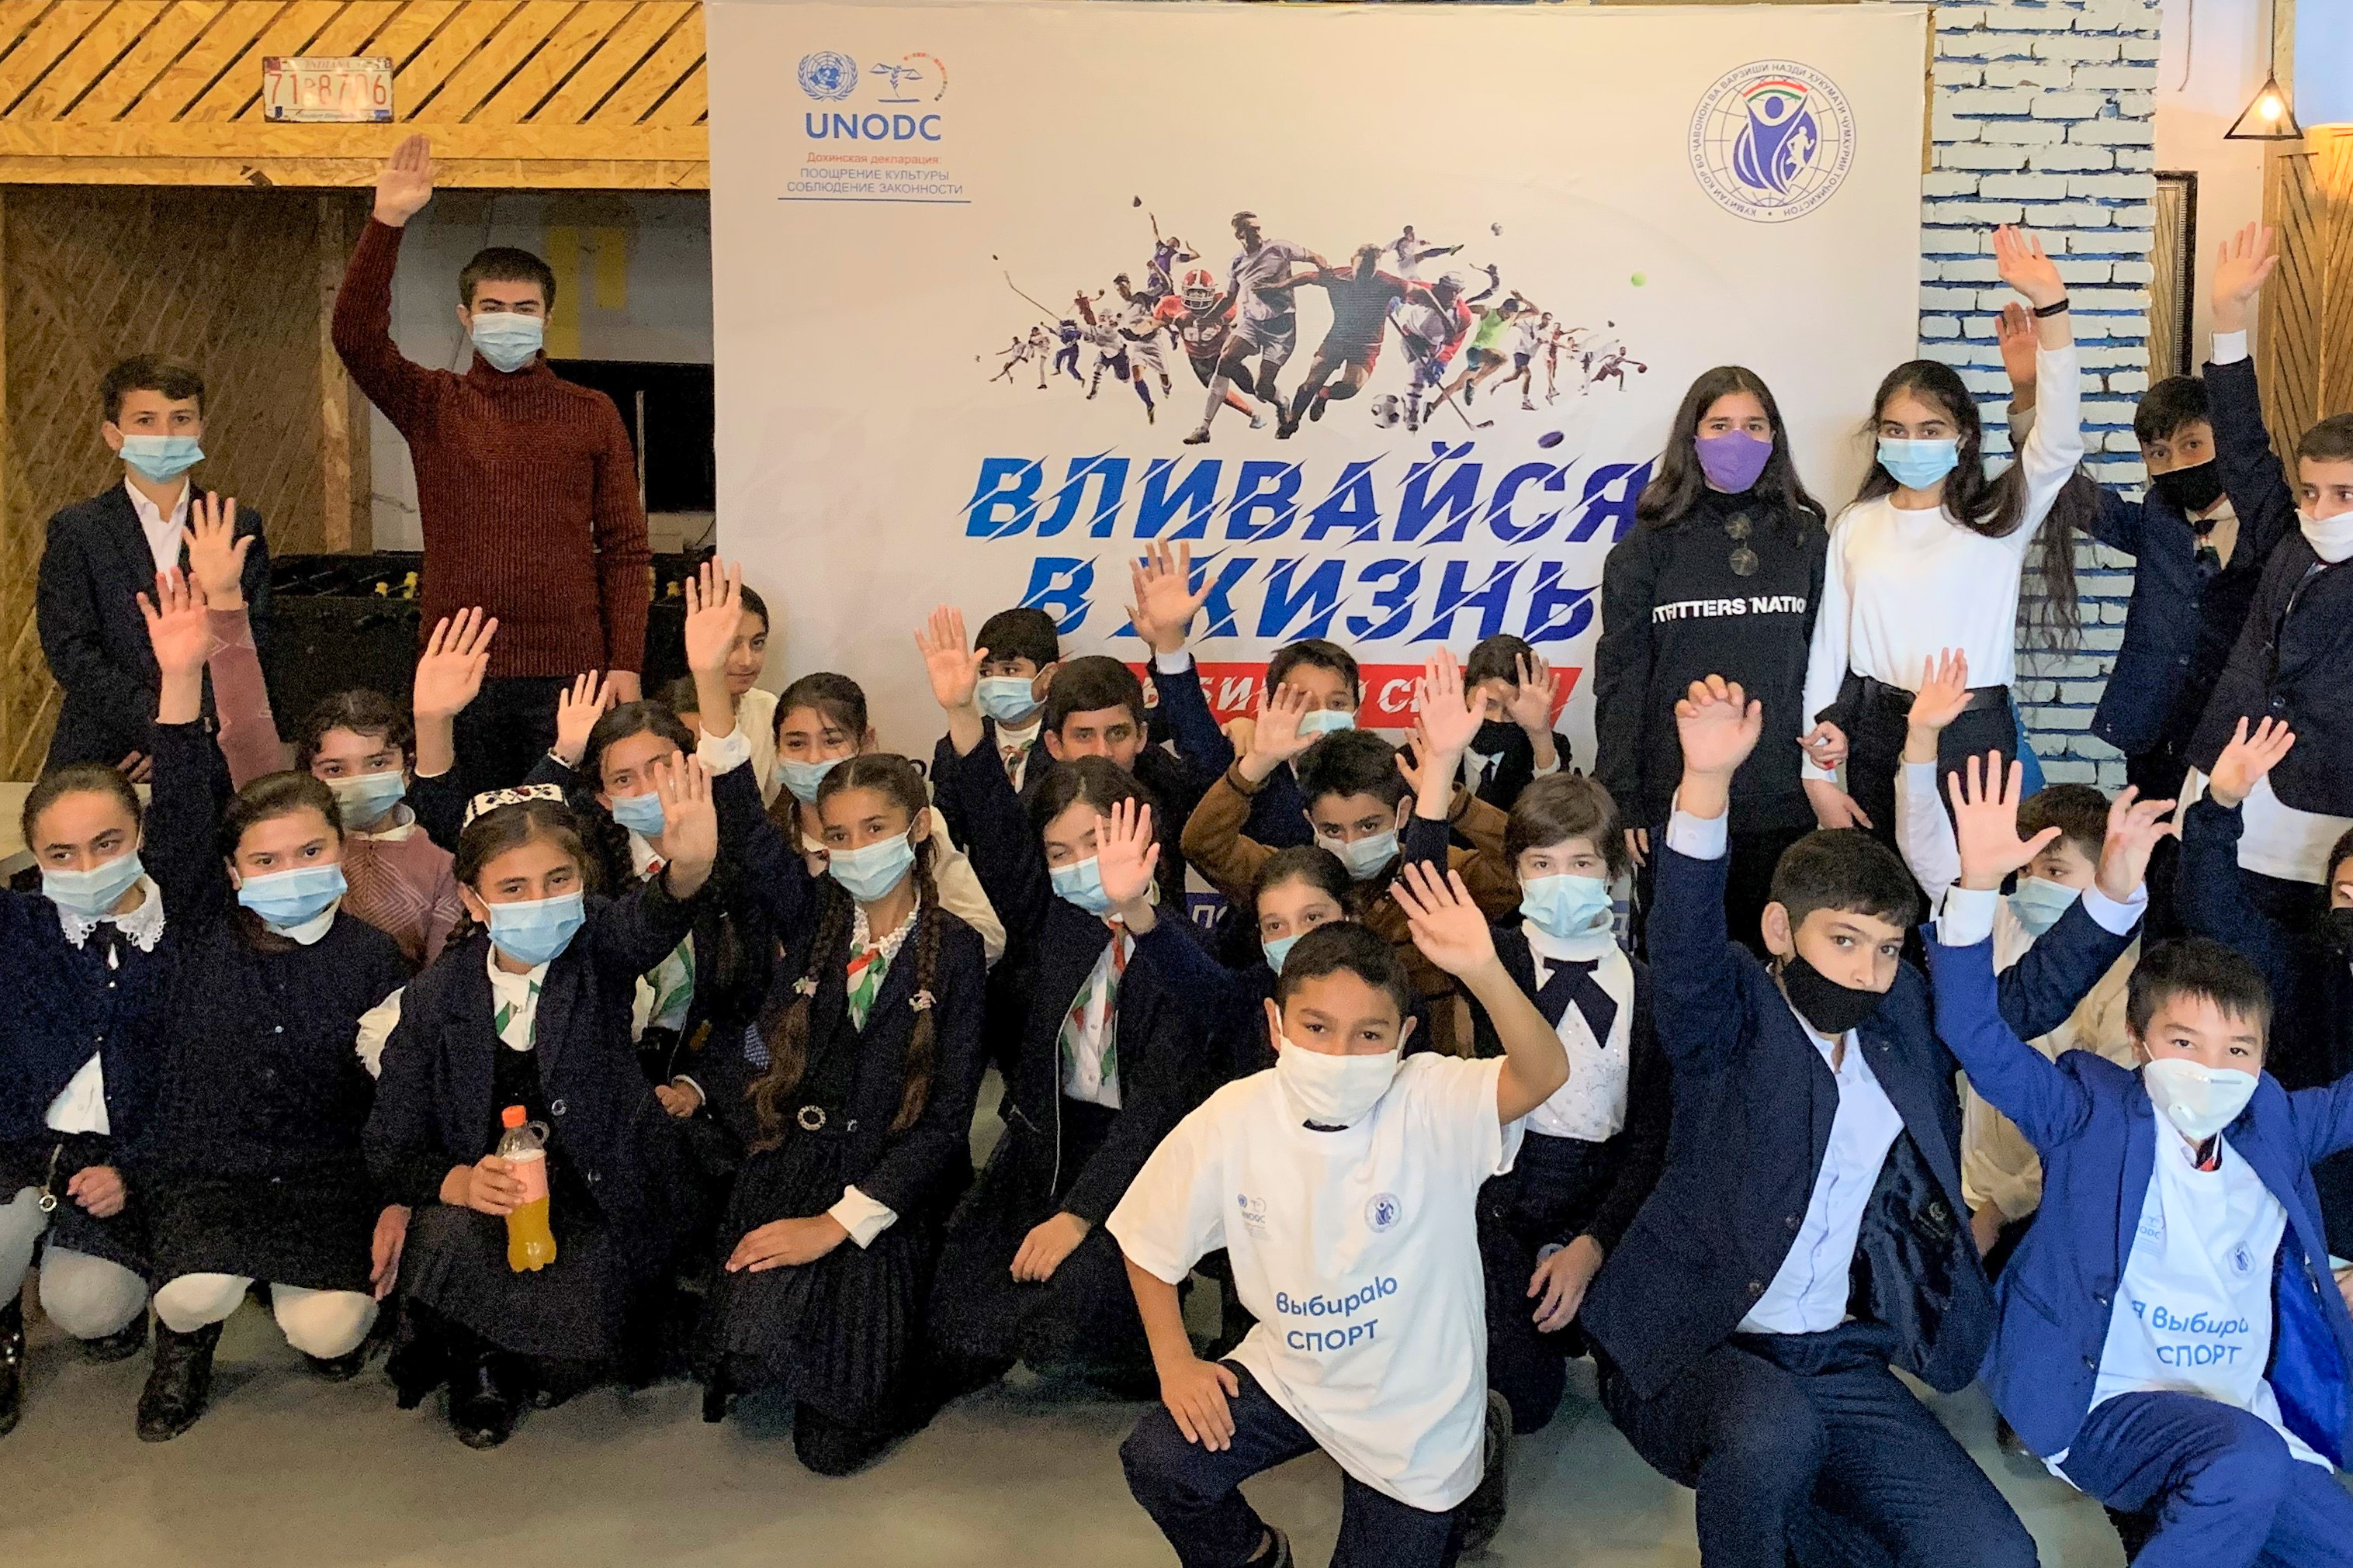 Leaving no one behind: Strengthening youth resilience during and after the pandemic in Tajikistan